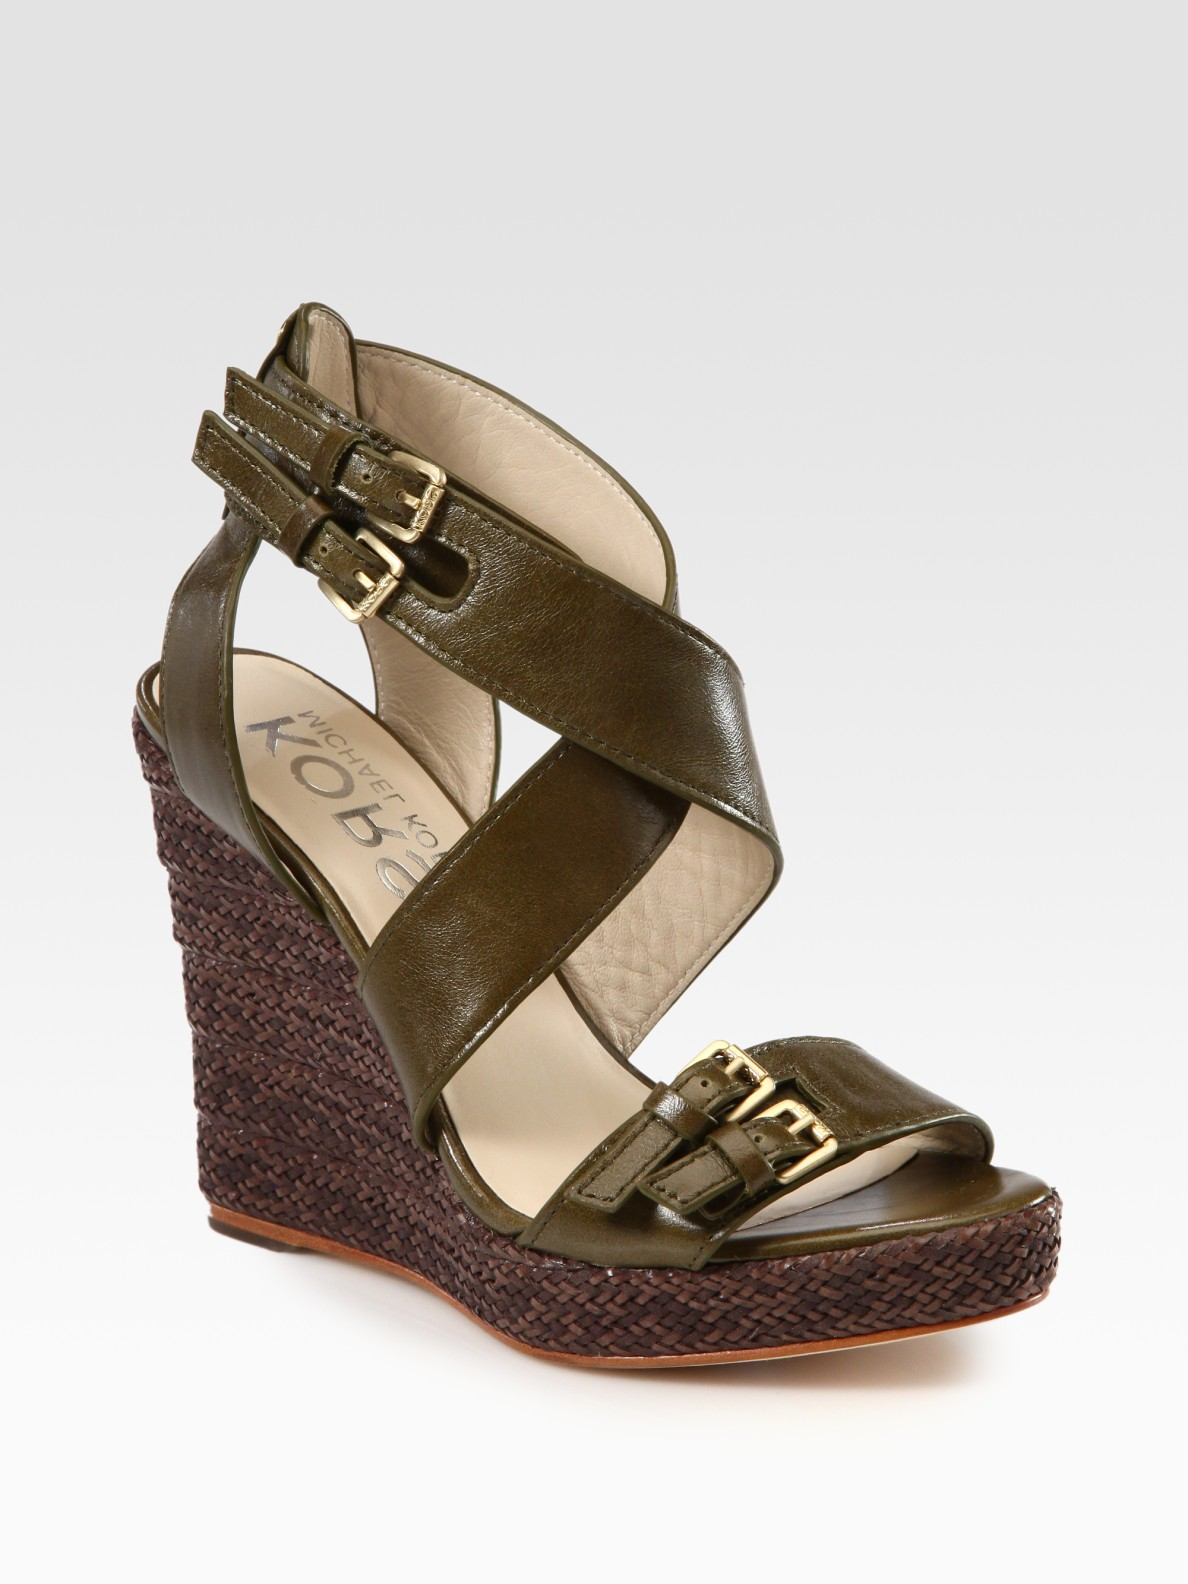 kors by michael kors westby leather espadrille wedge sandals in green olive lyst. Black Bedroom Furniture Sets. Home Design Ideas